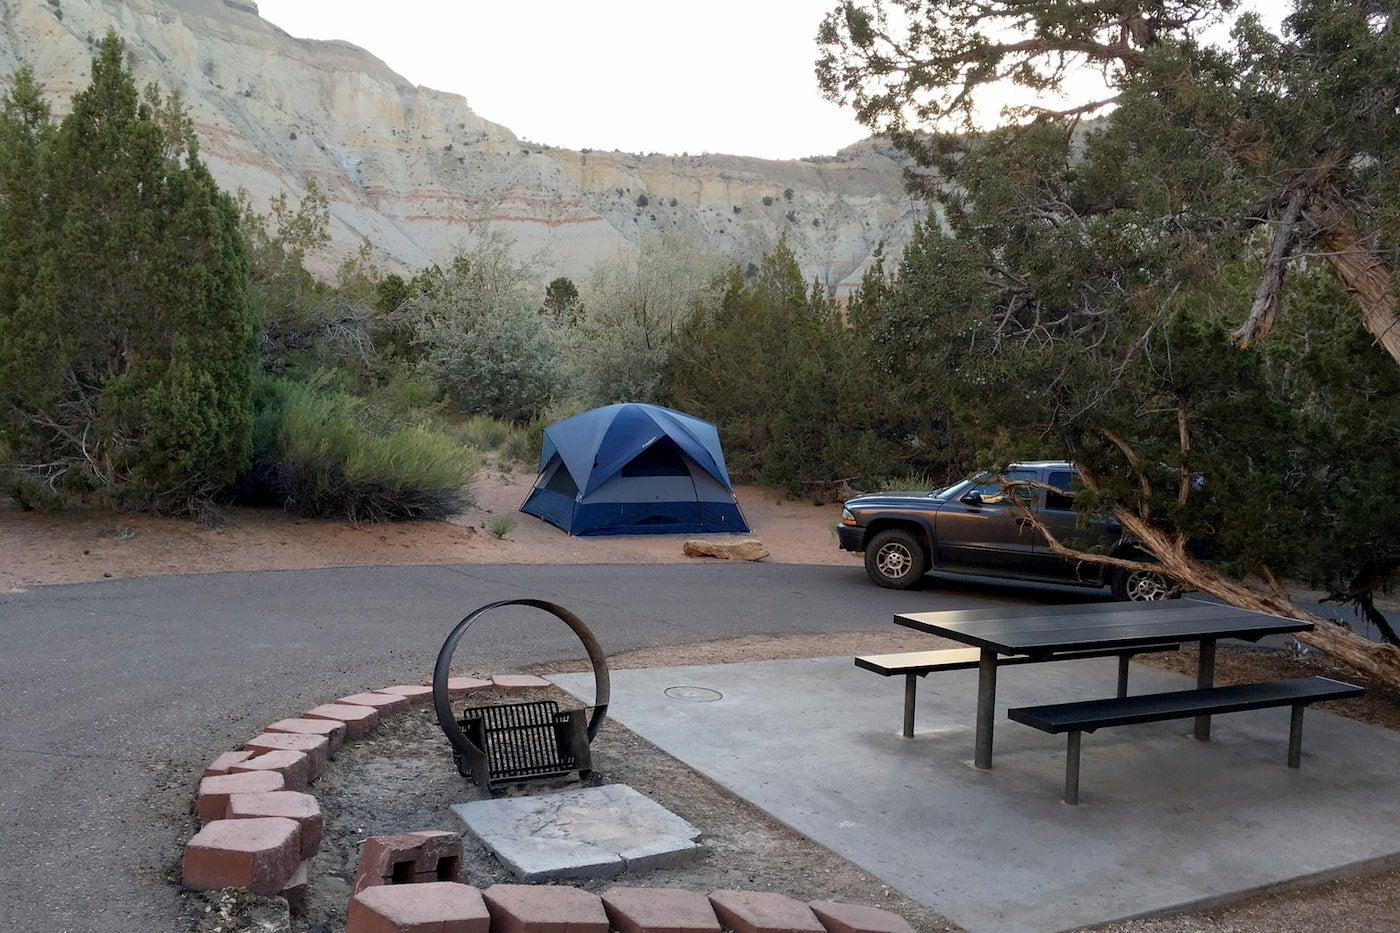 Campground and mountain landscape at Utah Kodahcrome Basin.